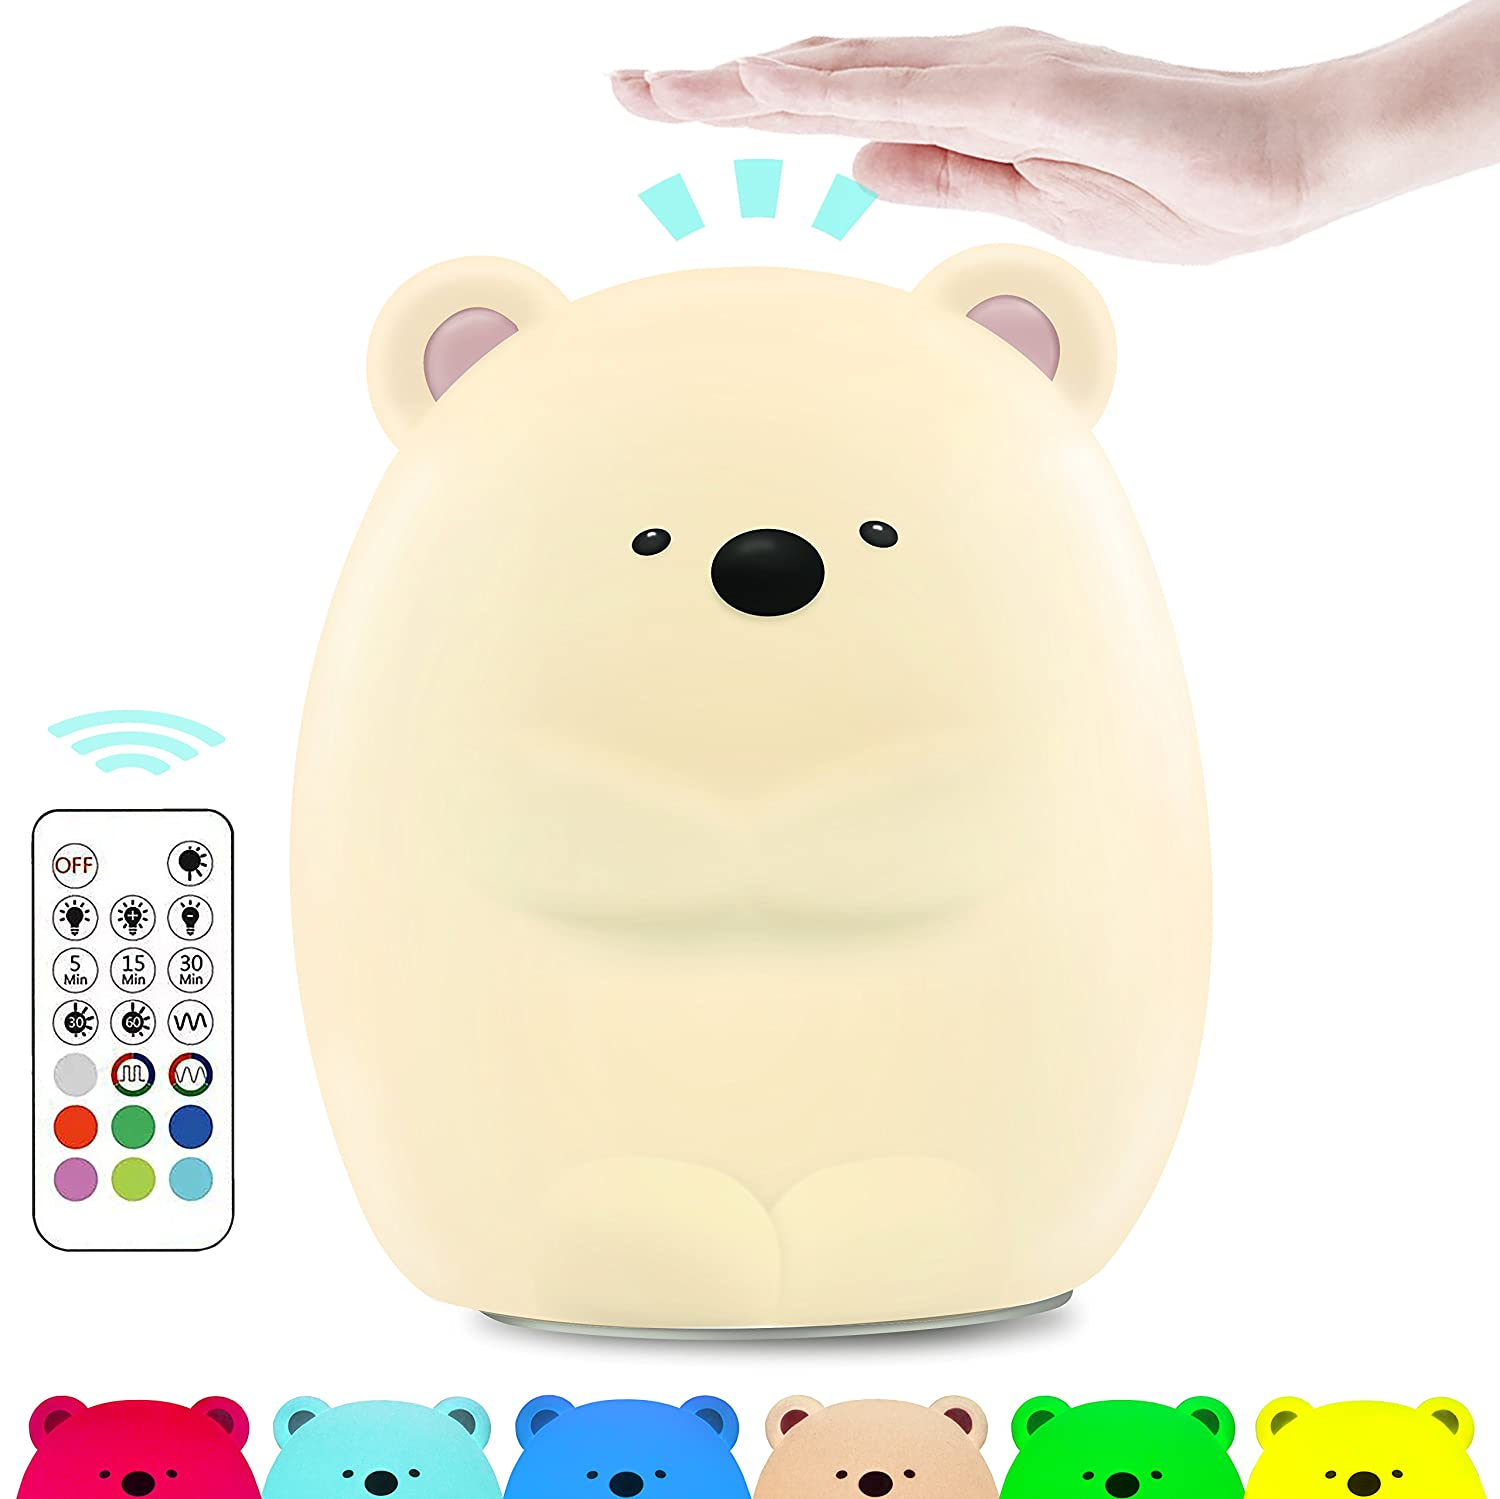 Cute Night Light for Kids, Makion The Logy Bear Touch & Rmote Control Soft Silicone Nursery Night Light for Boys and Girls,Dimmable 7 Color Changing Bright Nightlight shenzhen panda technology co. ltd.